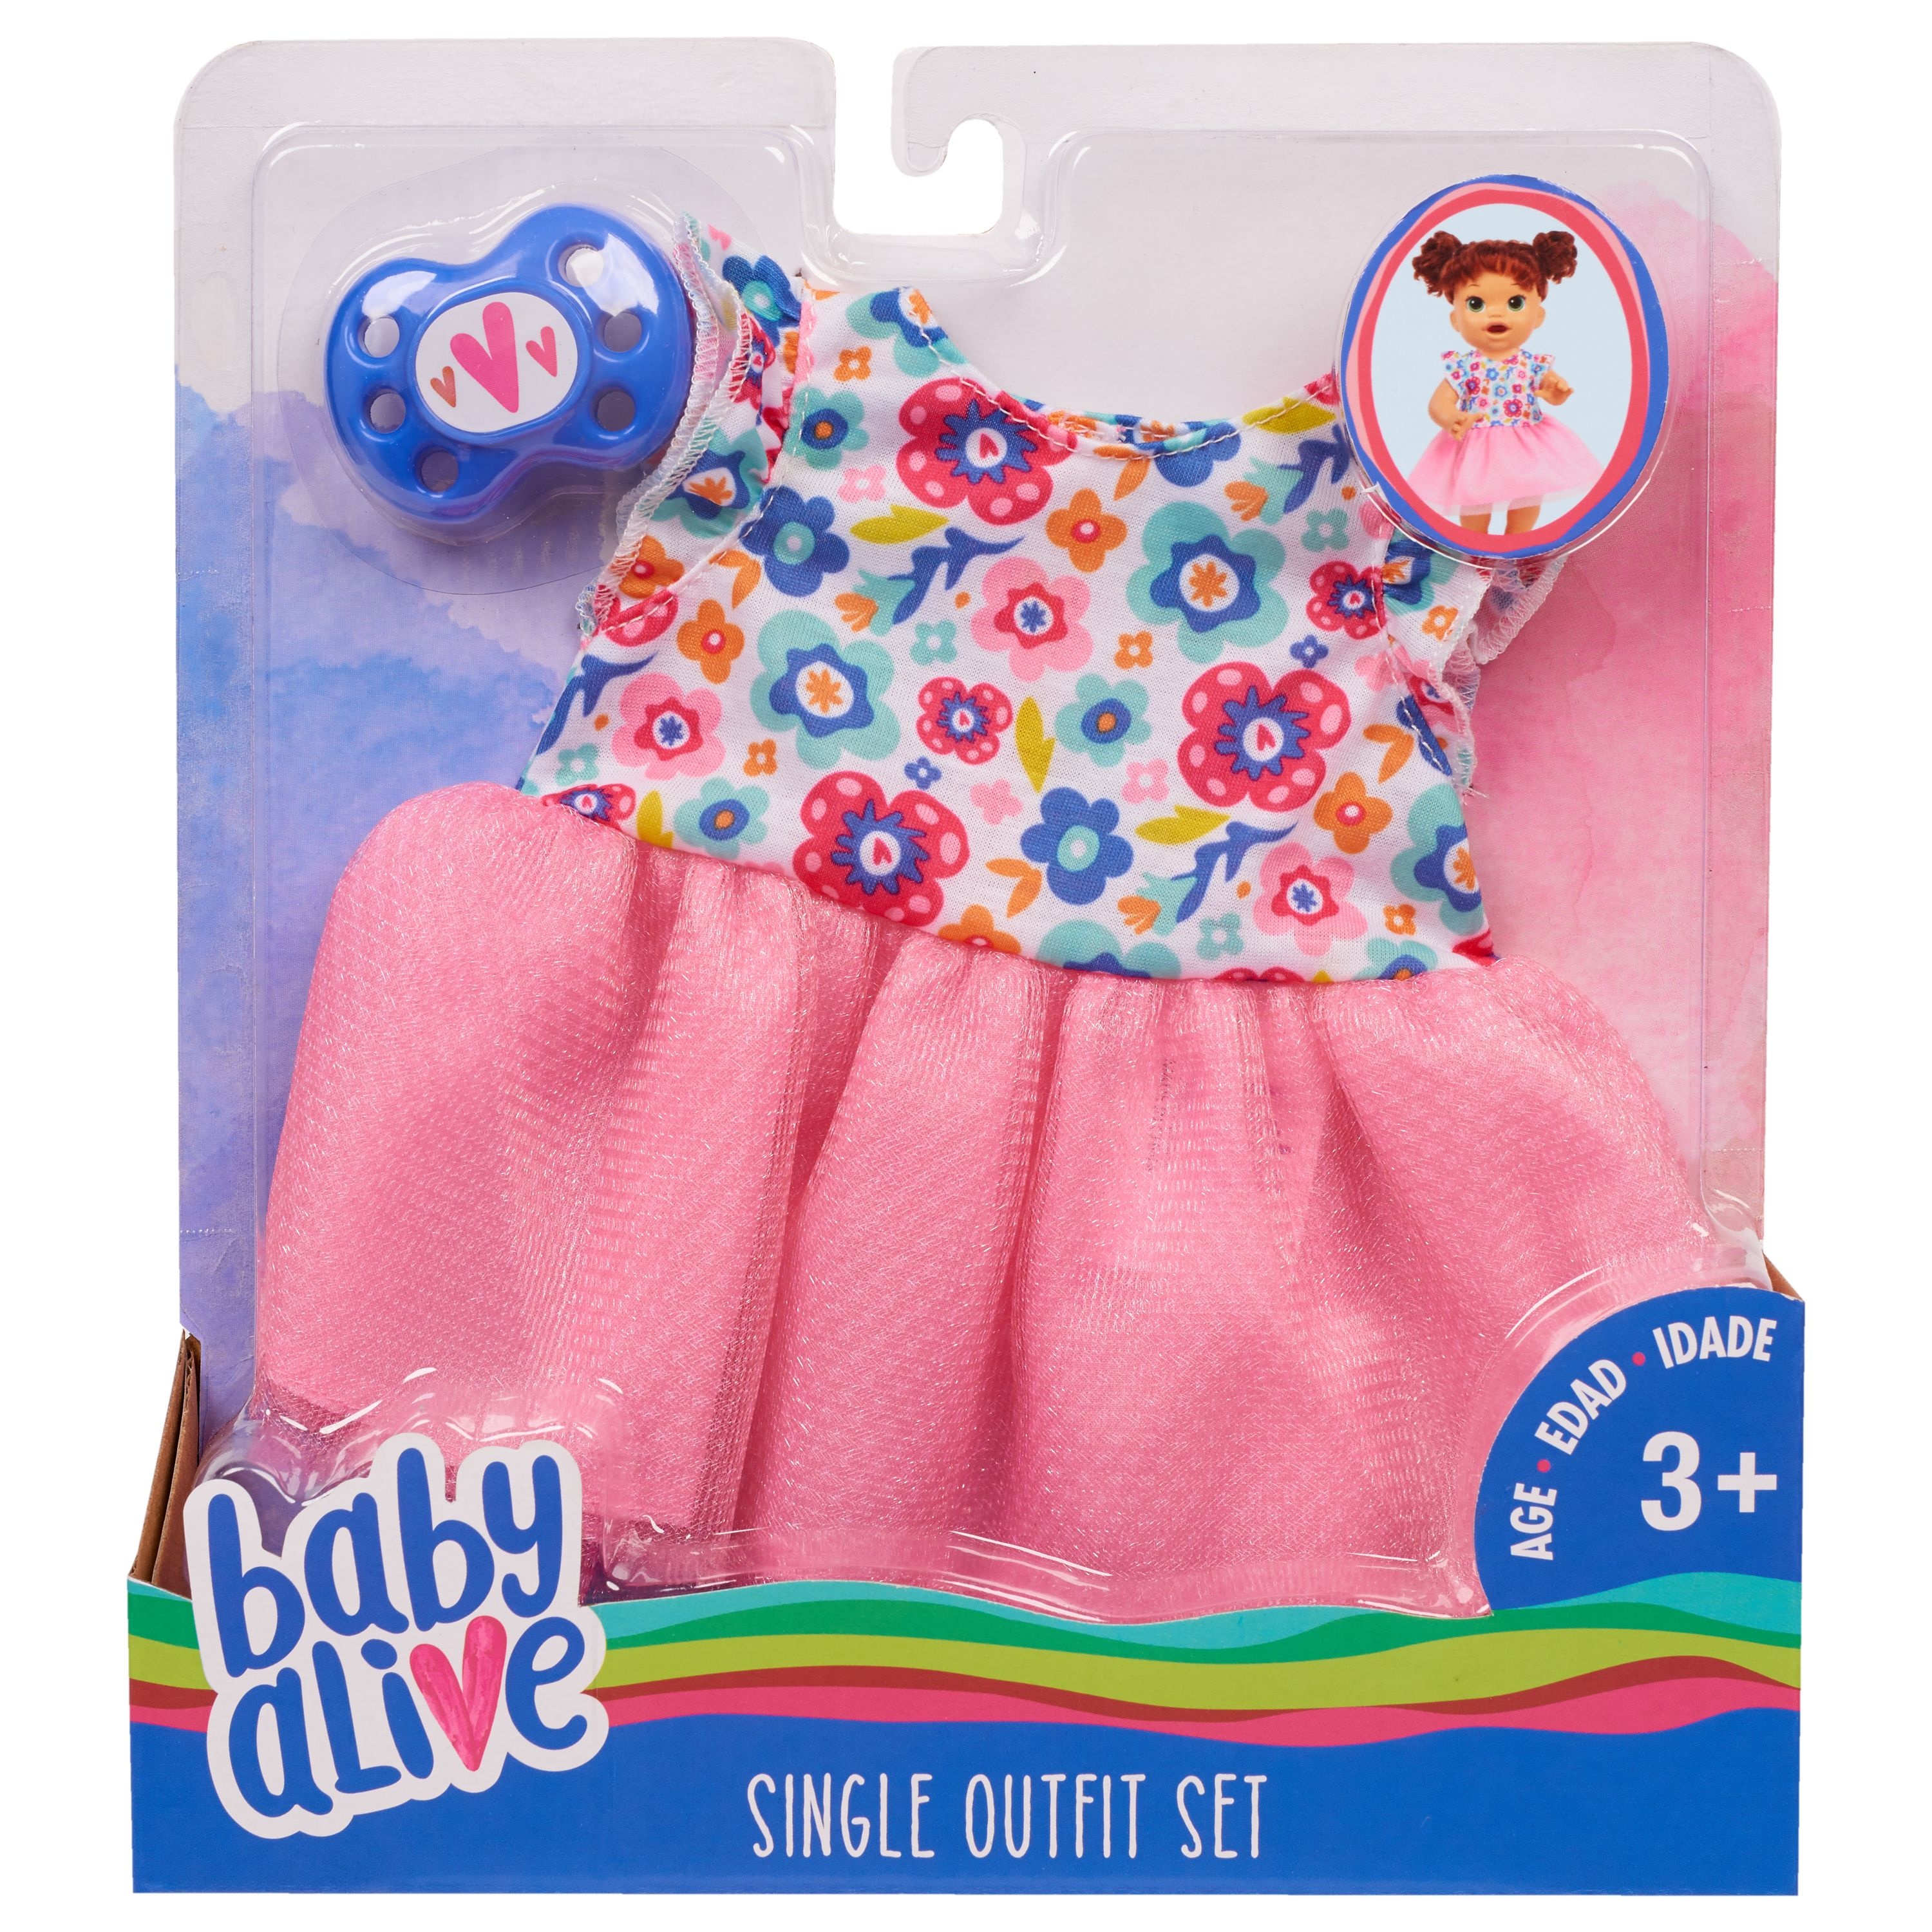 Baby Alive Single Outfit Set Floral Dress Ages 3 Walmart Com Baby Alive Doll Clothes Baby Alive Dolls Baby Alive Food